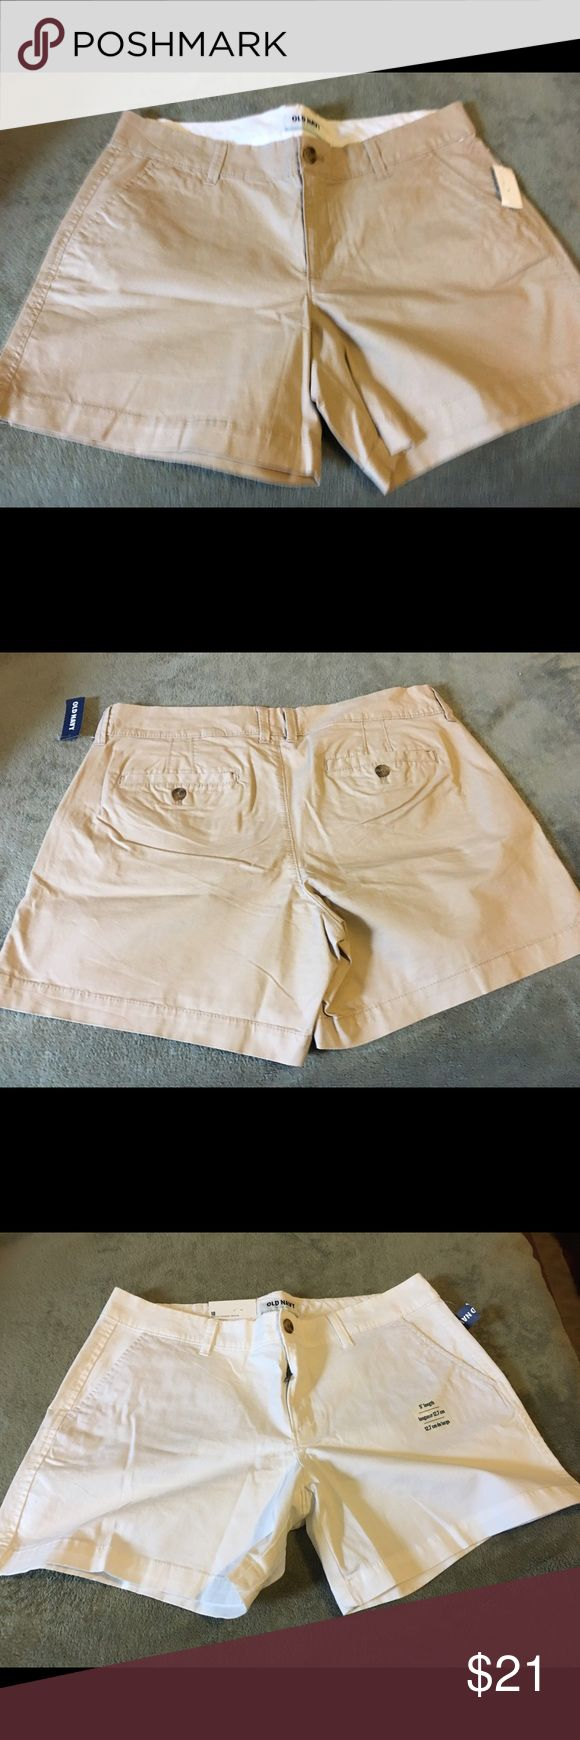 Old Navy Shorts bundle(2). New with partial tags. White and Khaki shorts bundle. Size 10. Old Navy. New with partial tag. Never worn. Old Navy Shorts Bermudas